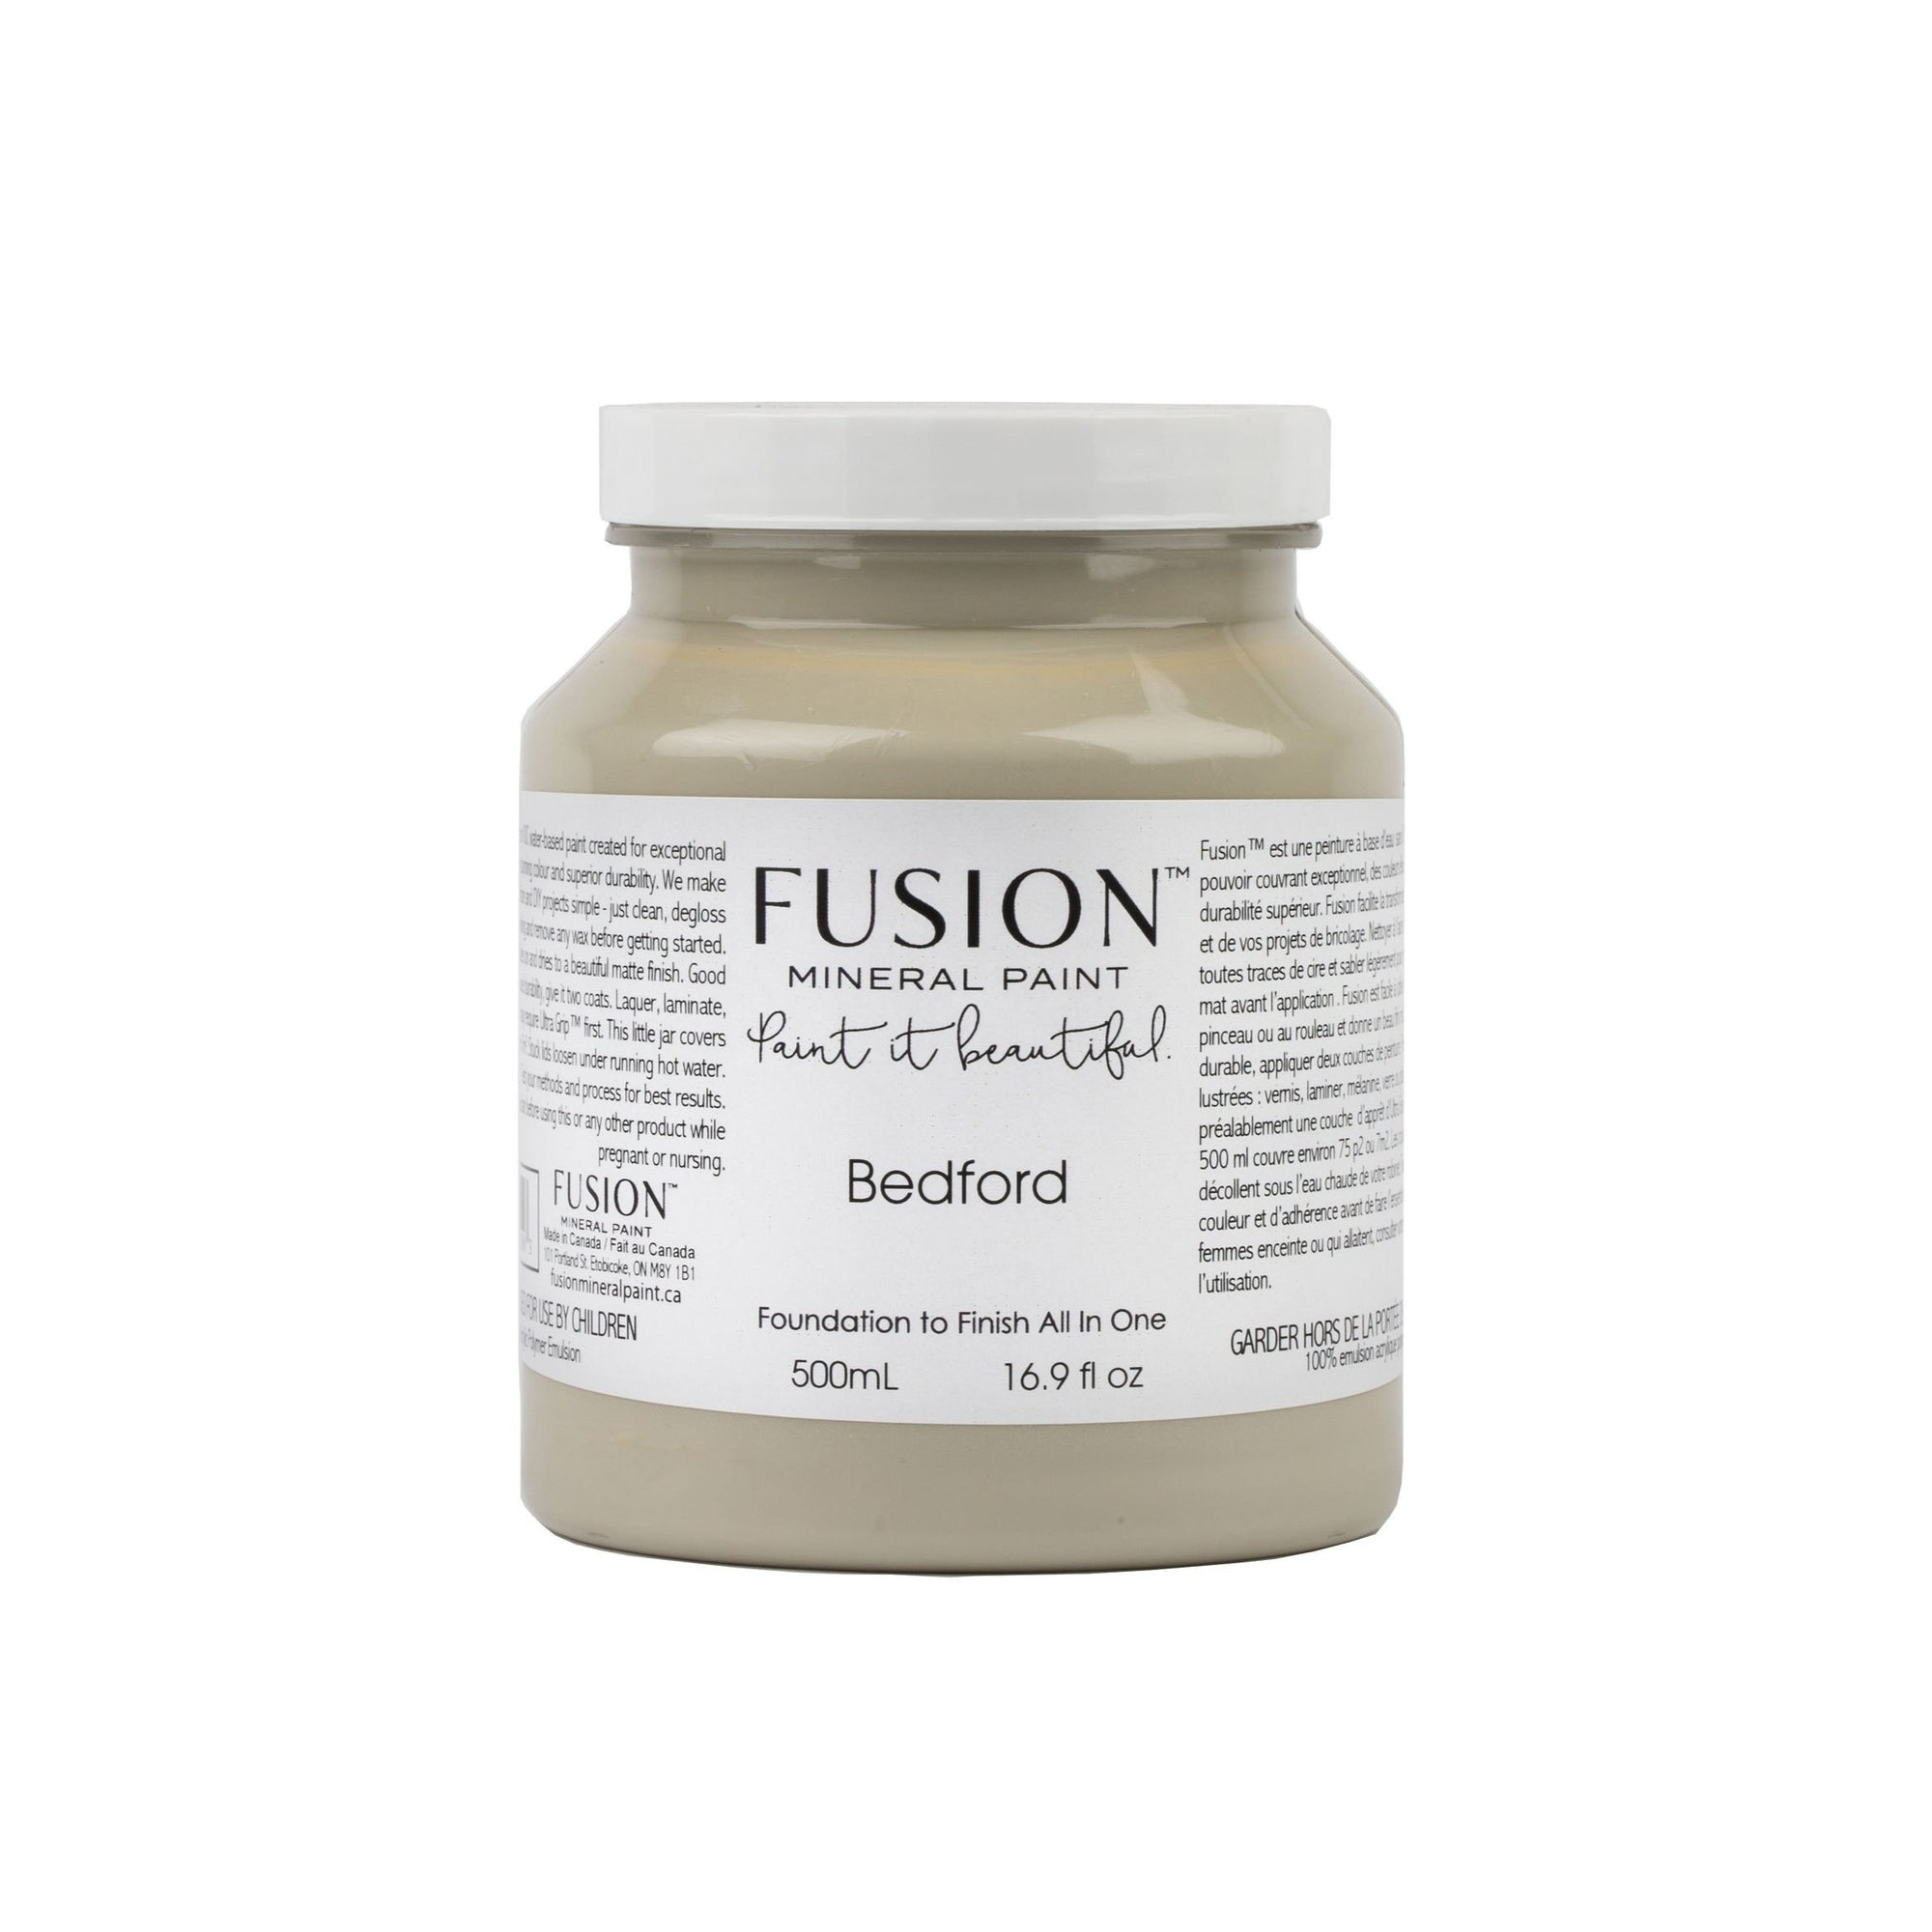 fusion mineral paint farmhouse inspired bedford